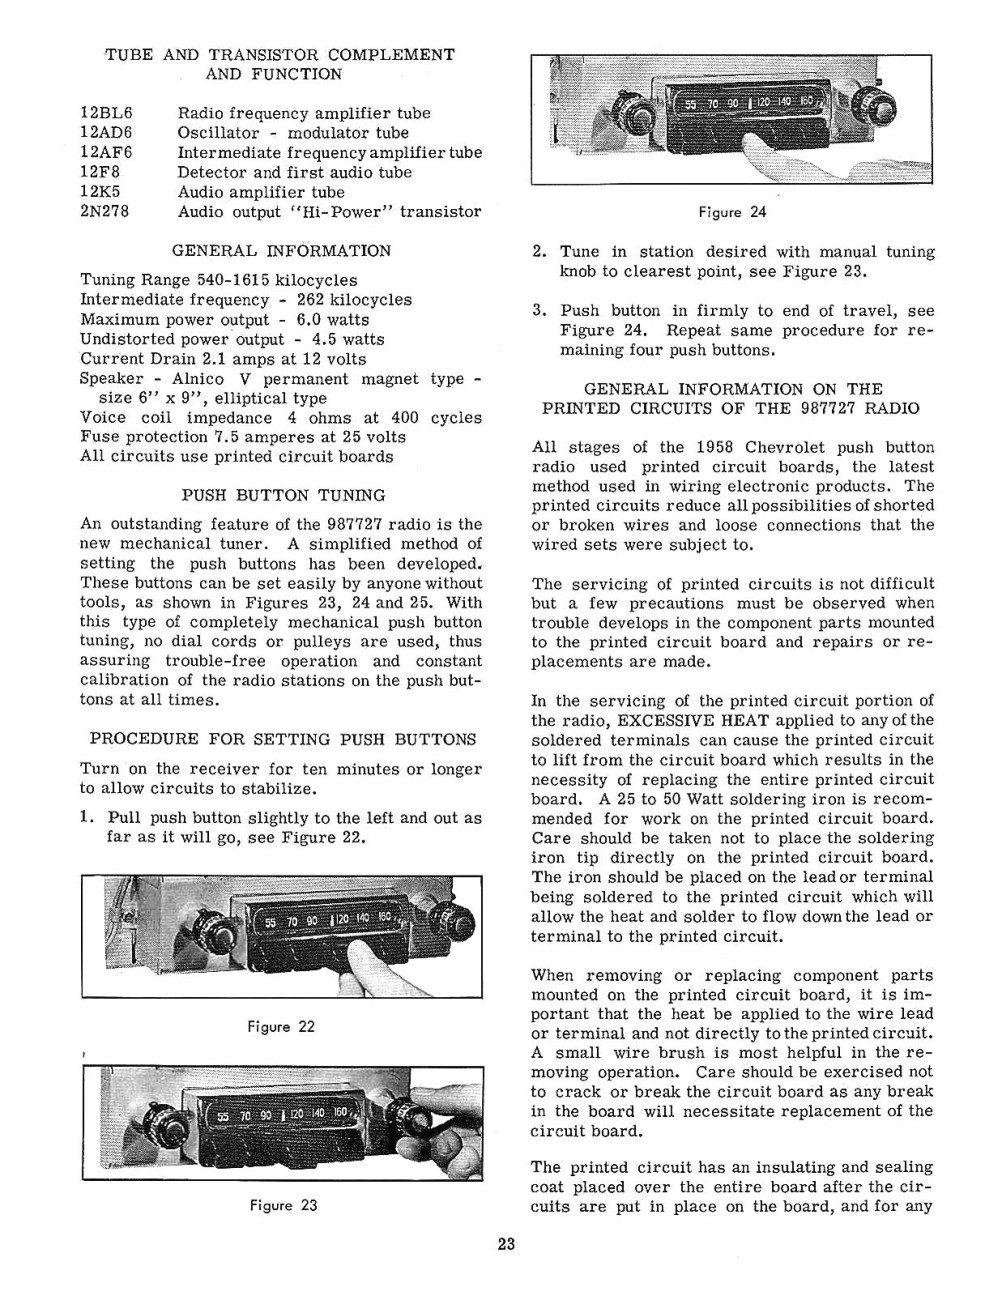 Snap Old Chevrolet Radio Information Online Chevy Manuals Autronic Eye Circuit Diagram For The 1960 Passenger Car 1958 And Service Shop Manual